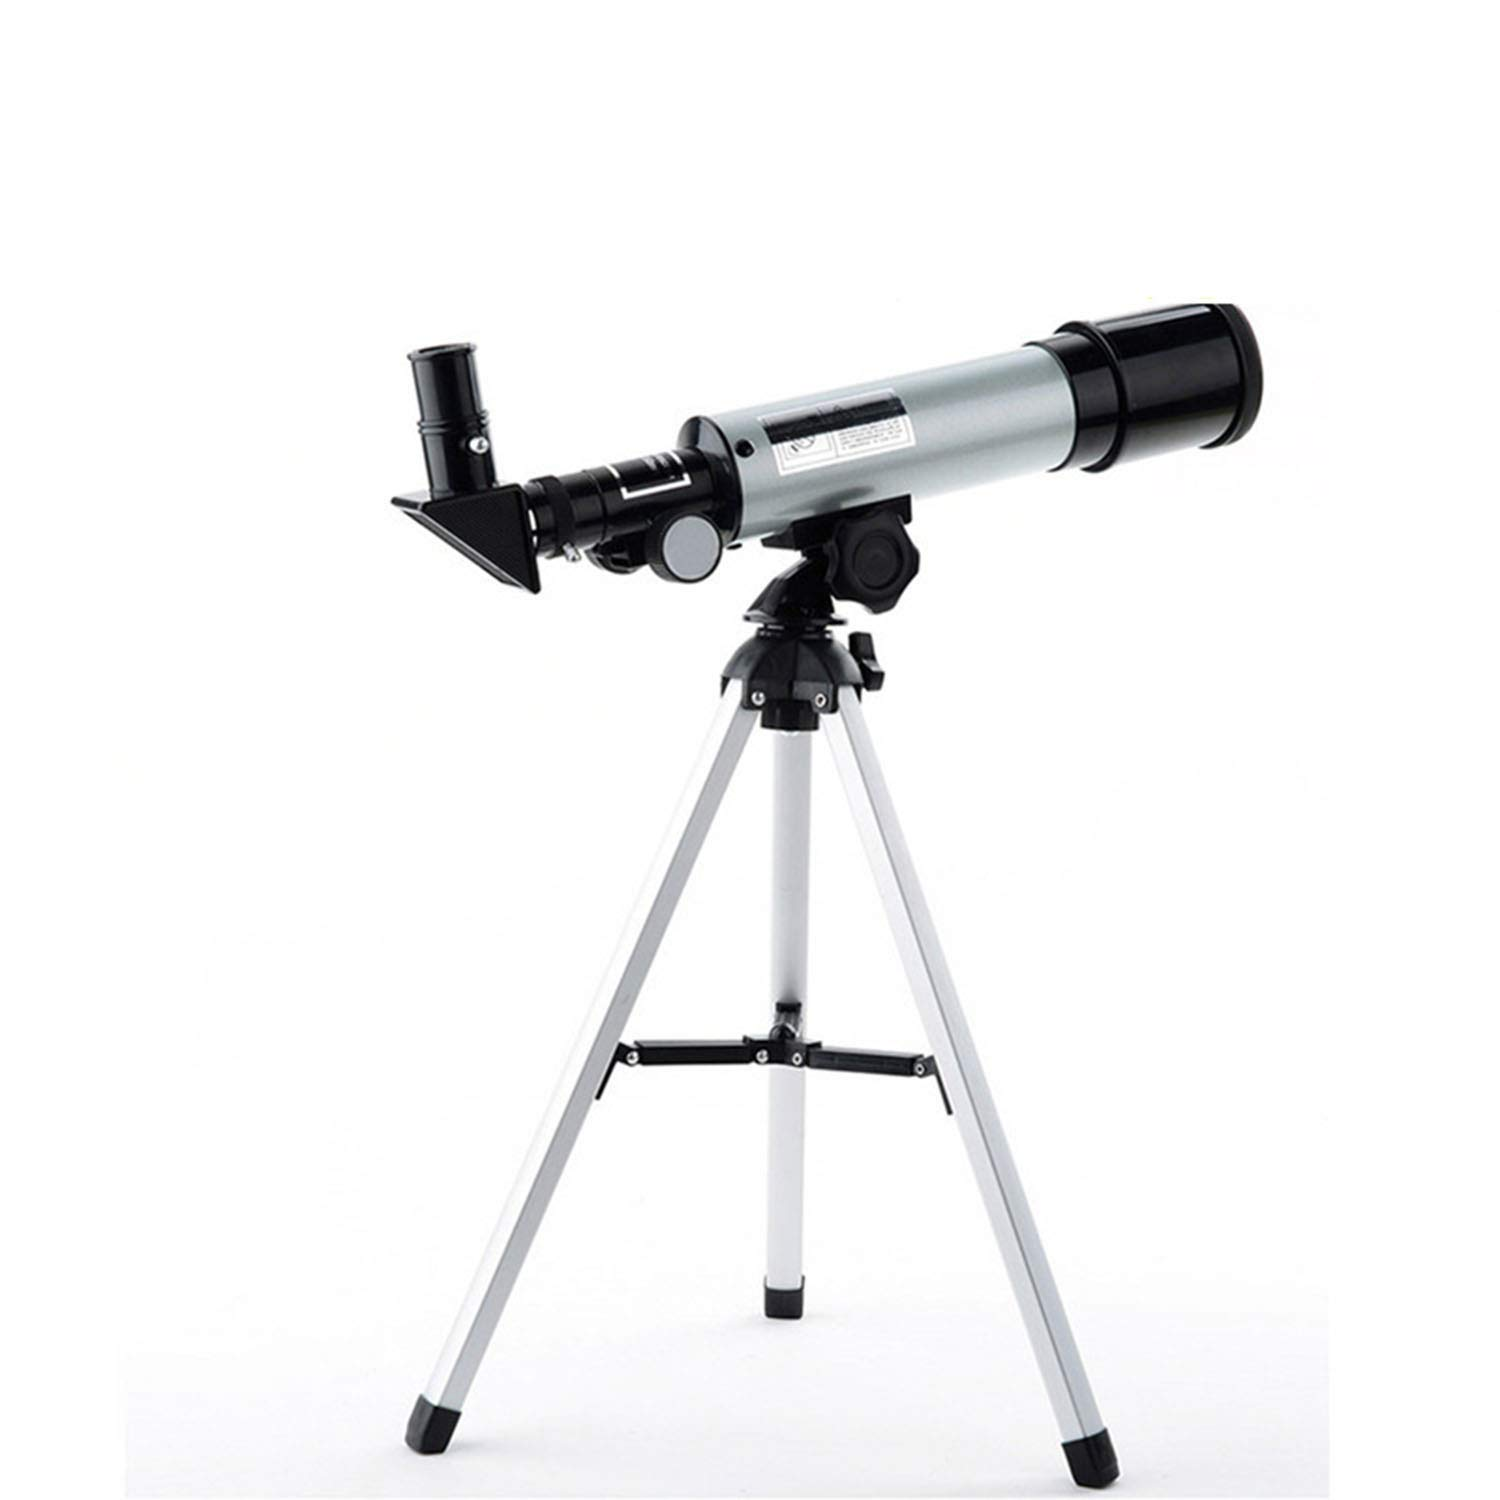 YAMADIE Access Astronomical Telescope - Viewing Mirror Monoculars Student Children's Gifts by YAMADIE